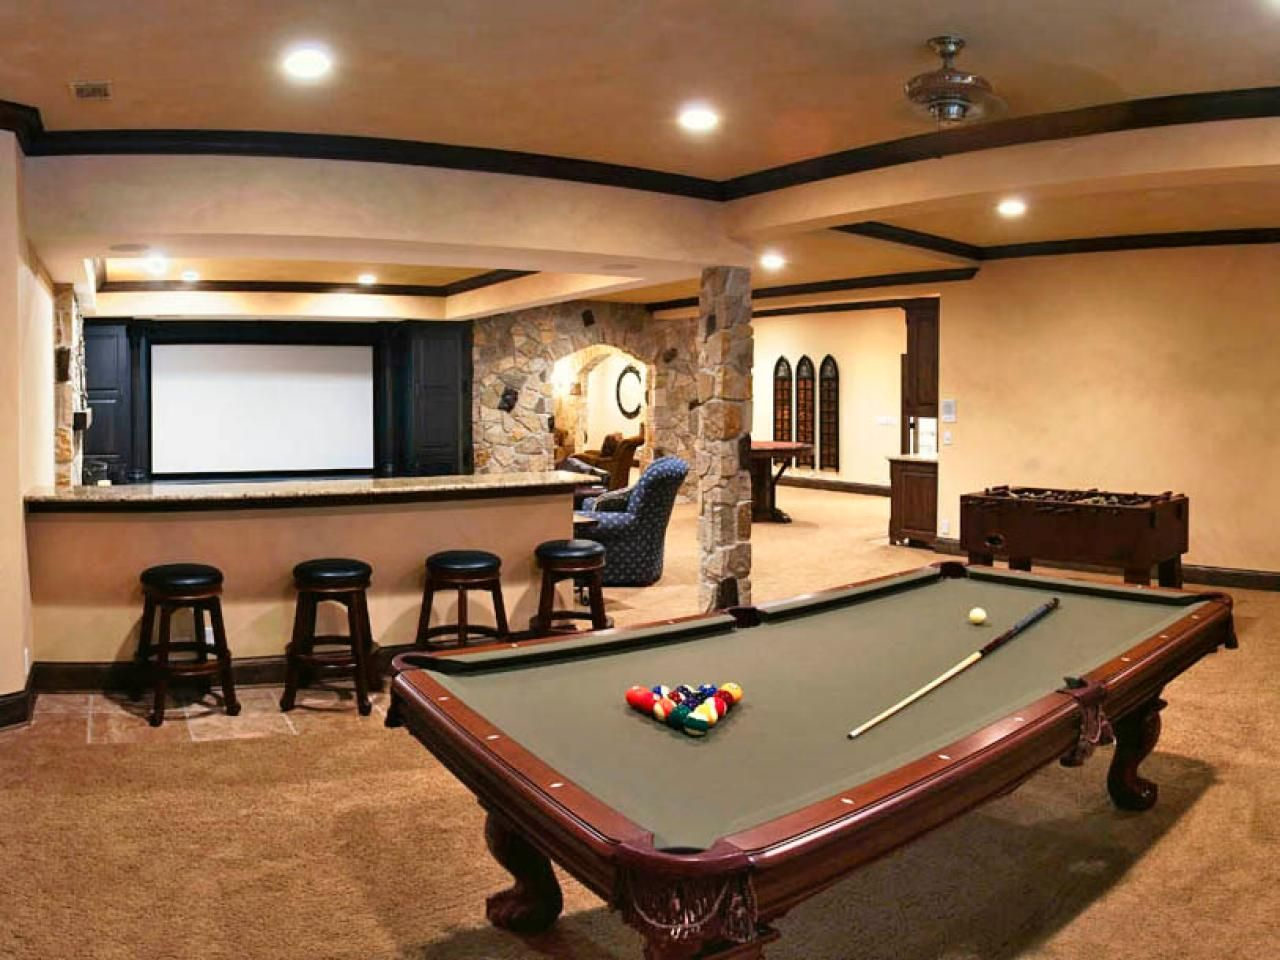 Solving basement design problems pool games pool table for Game room design ideas